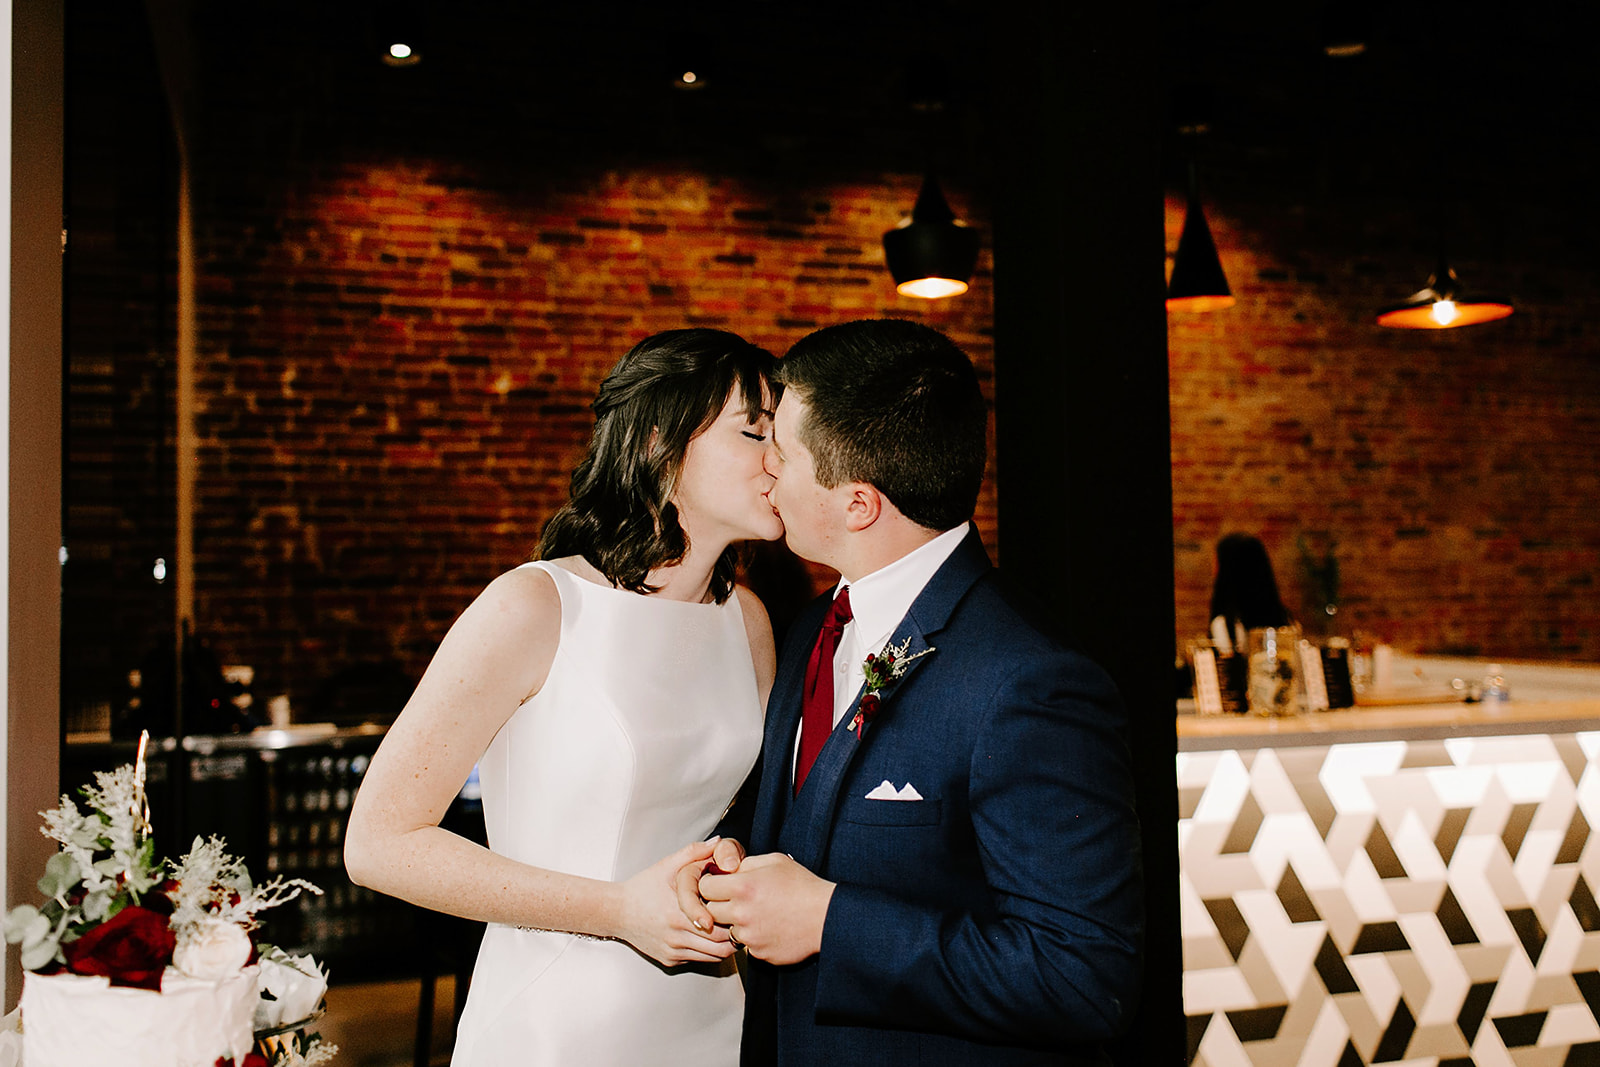 Emily and Davis_ Wedding at Vision Loft Indy in Indianapolis Indiana by Emily Elyse Wehner Photogrpahy LLC-818.jpg